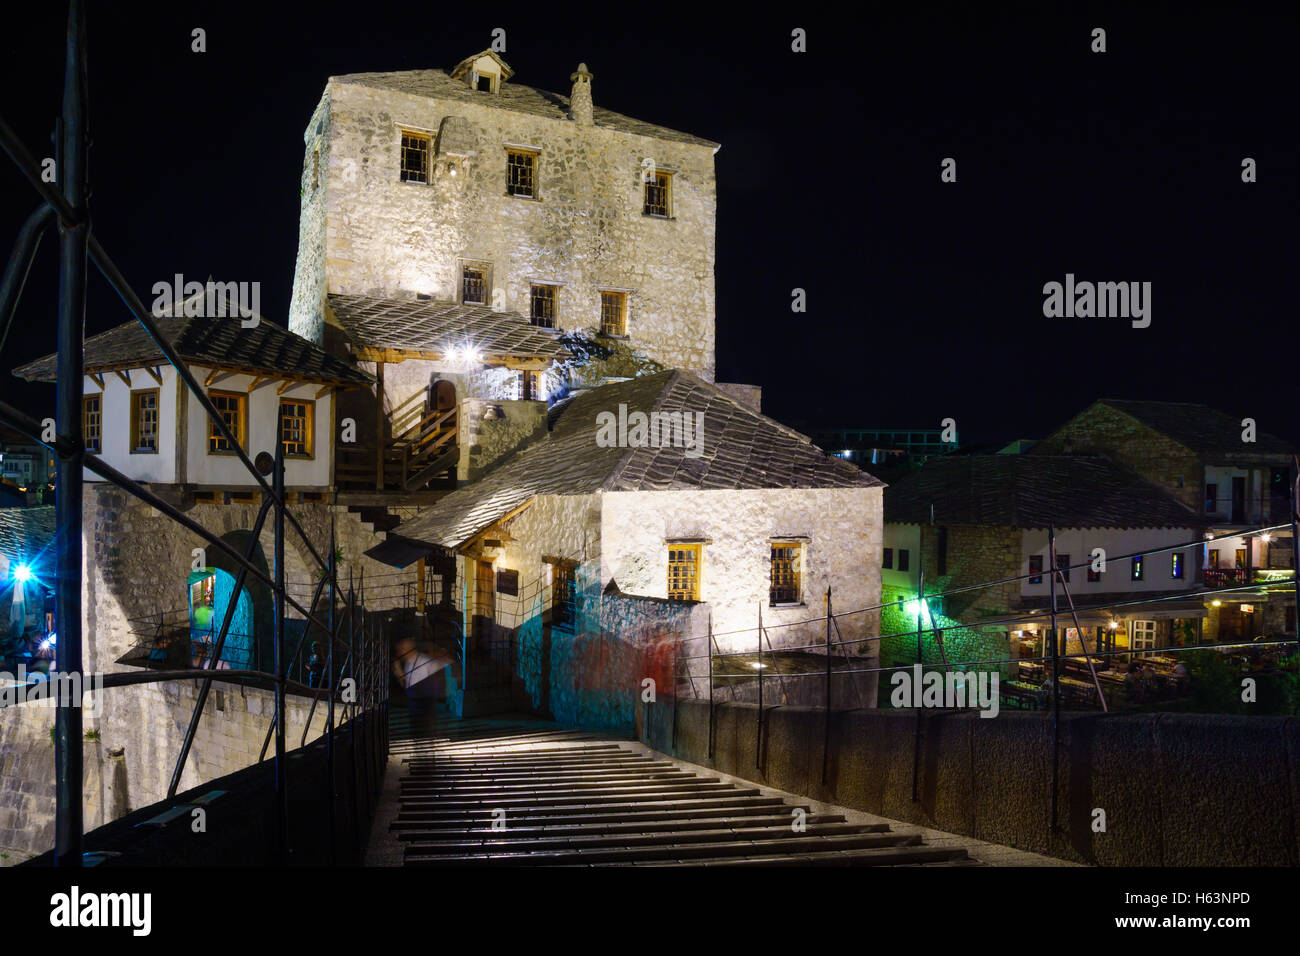 The west tower of the Old Bridge (Stari Most) at night, in the old city of Mostar, Bosnia and Herzegovina - Stock Image